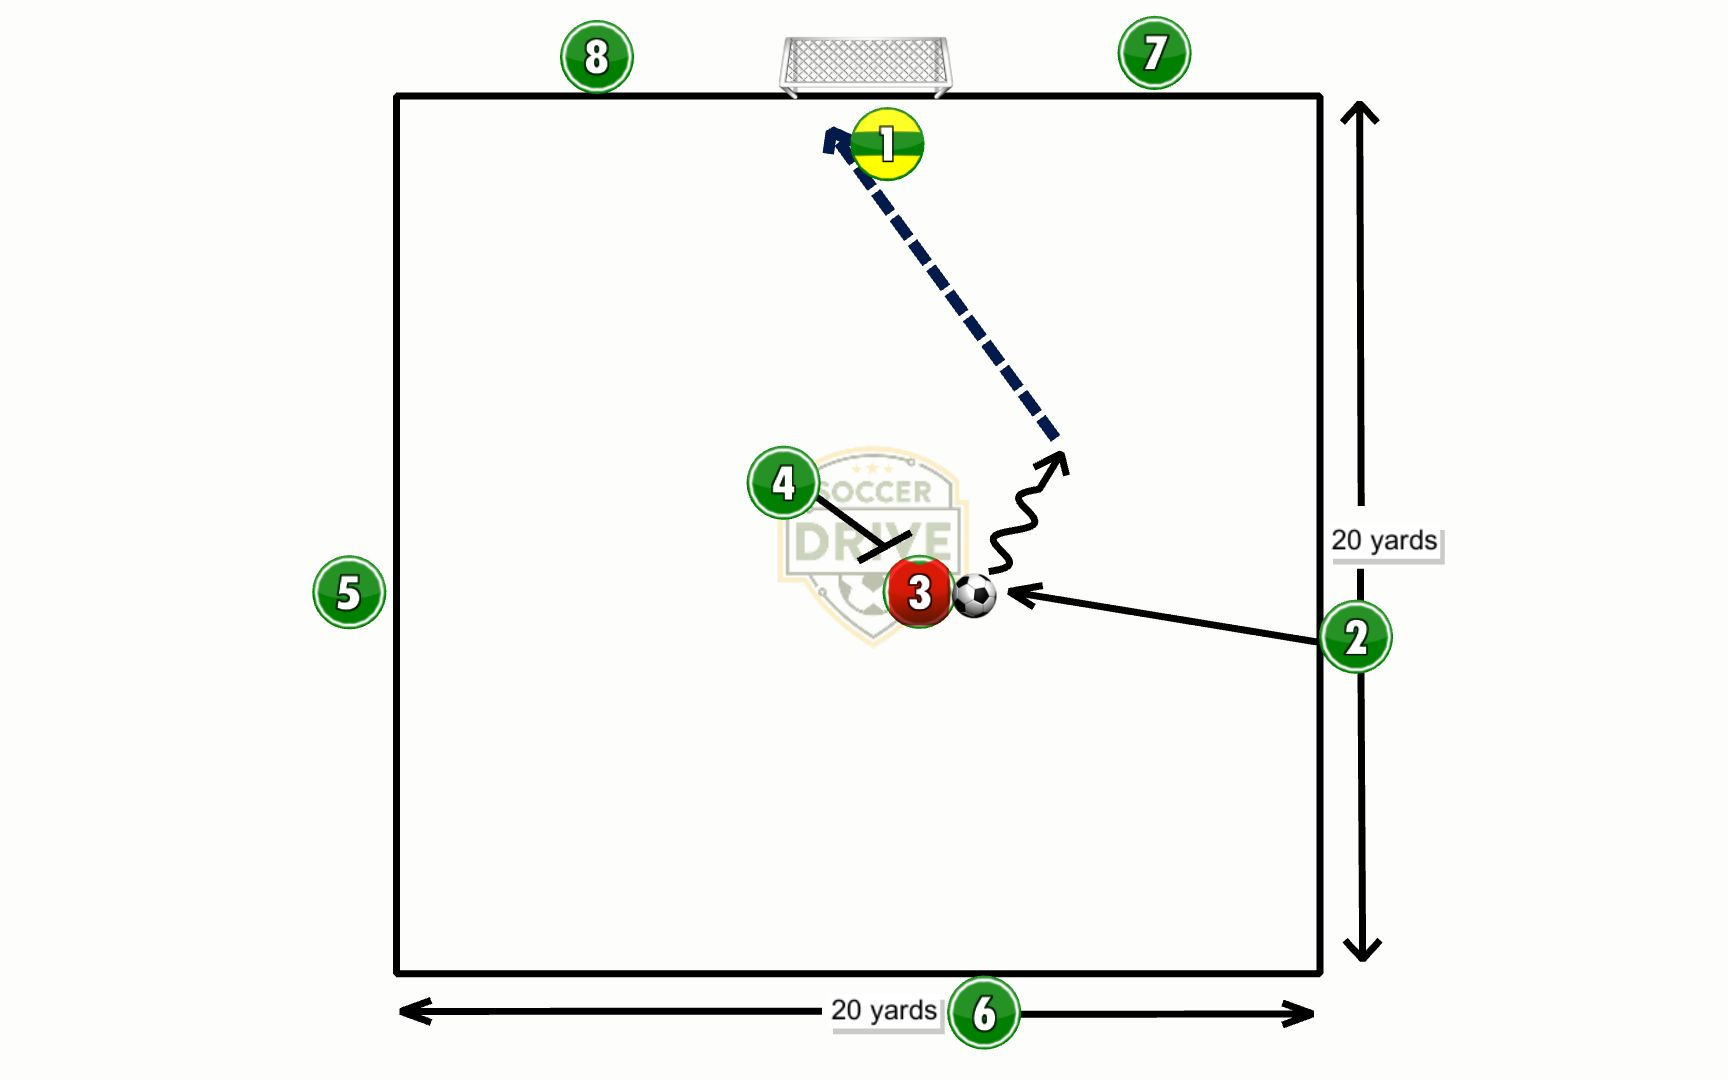 1 vs. 1 to Goal Soccer Game